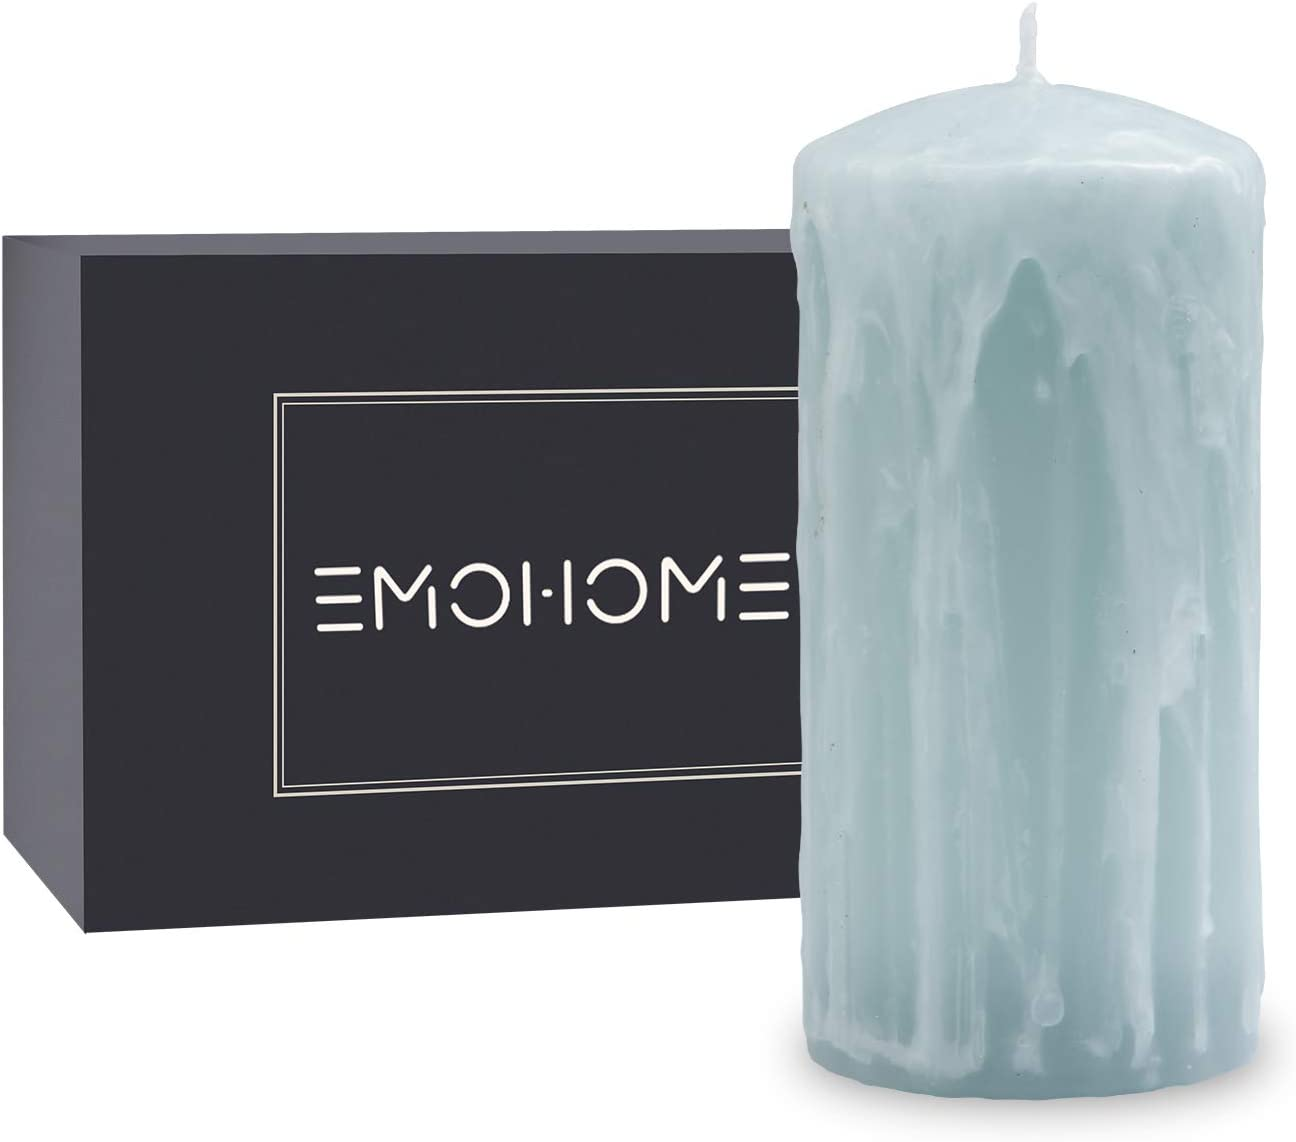 EMOHOME Mothers Day 3X6 Inch Unscented Pillar Candle with Wax Pouring On Top Perfect for Valentine's Day Gifts for Women,Wedding Party Birthday Dinner Home Decoration Spa (Ice Blue)